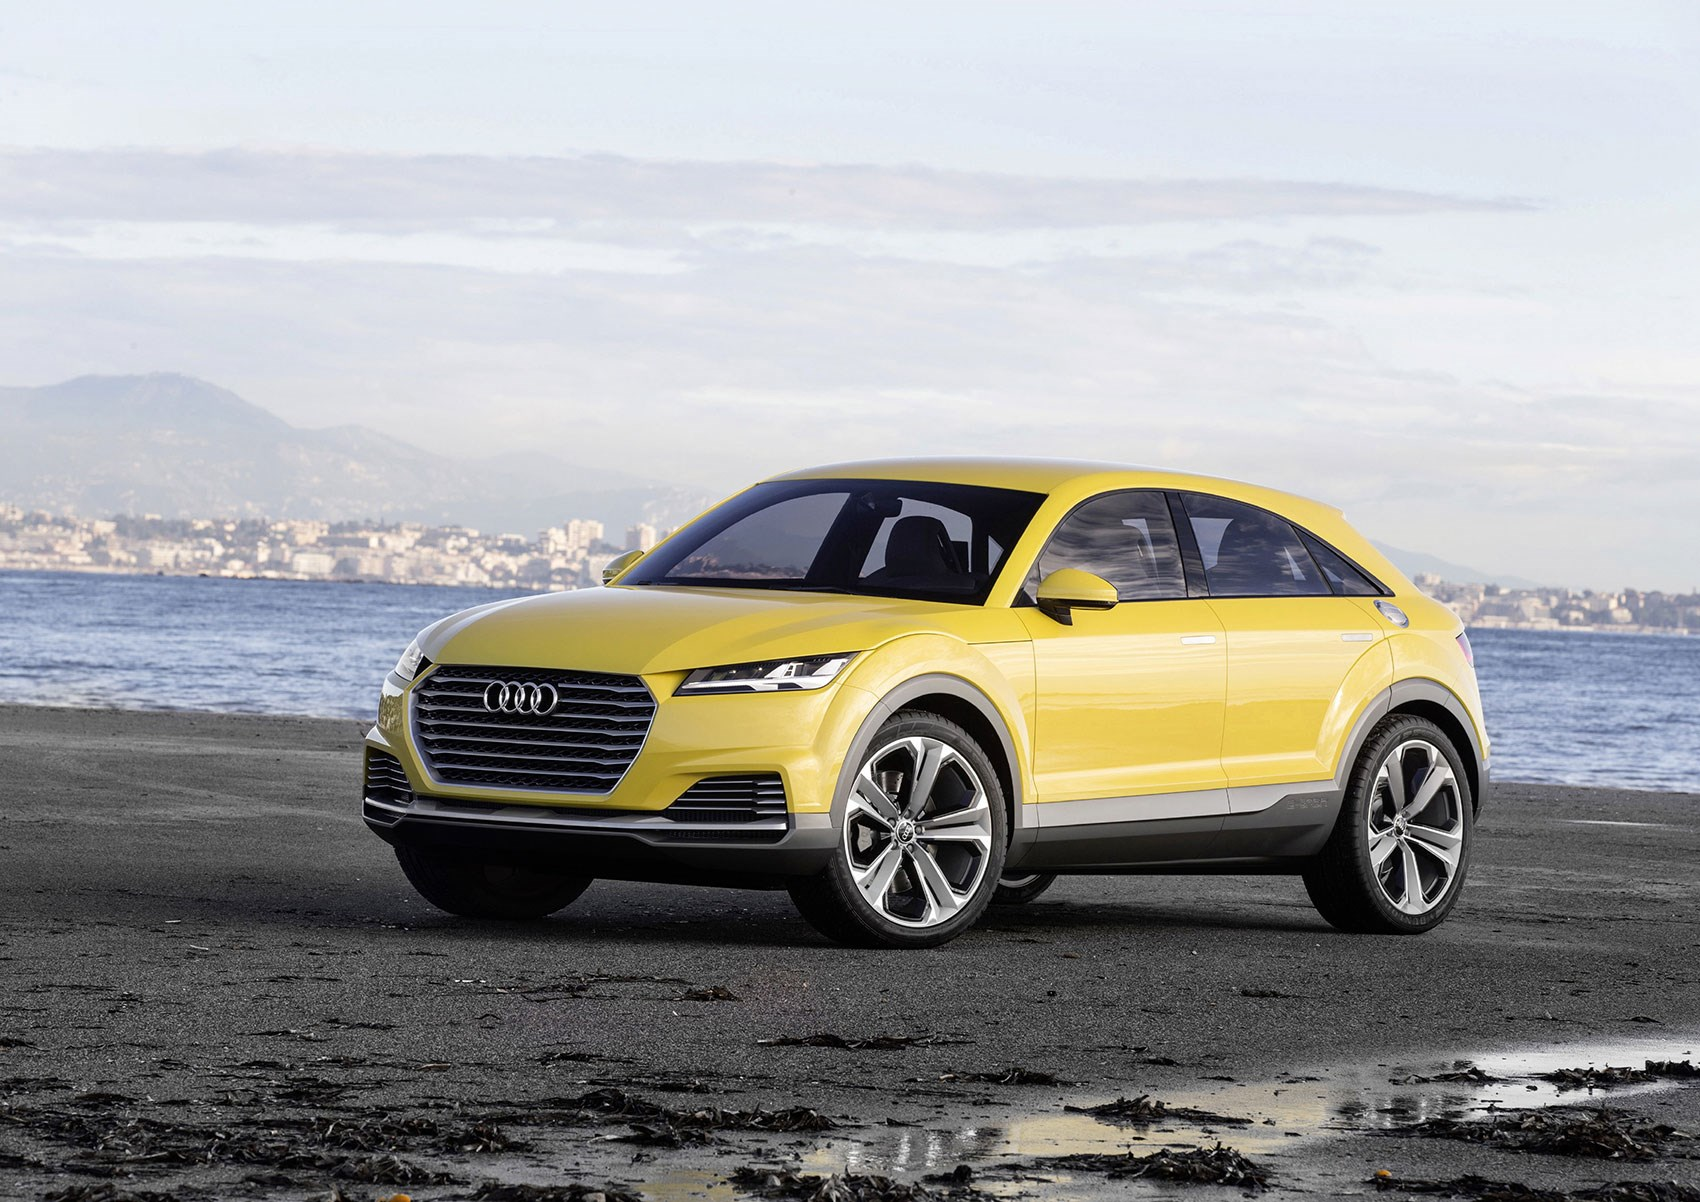 Audi Q4 Set For Launch In 2019 And More Q Models On The